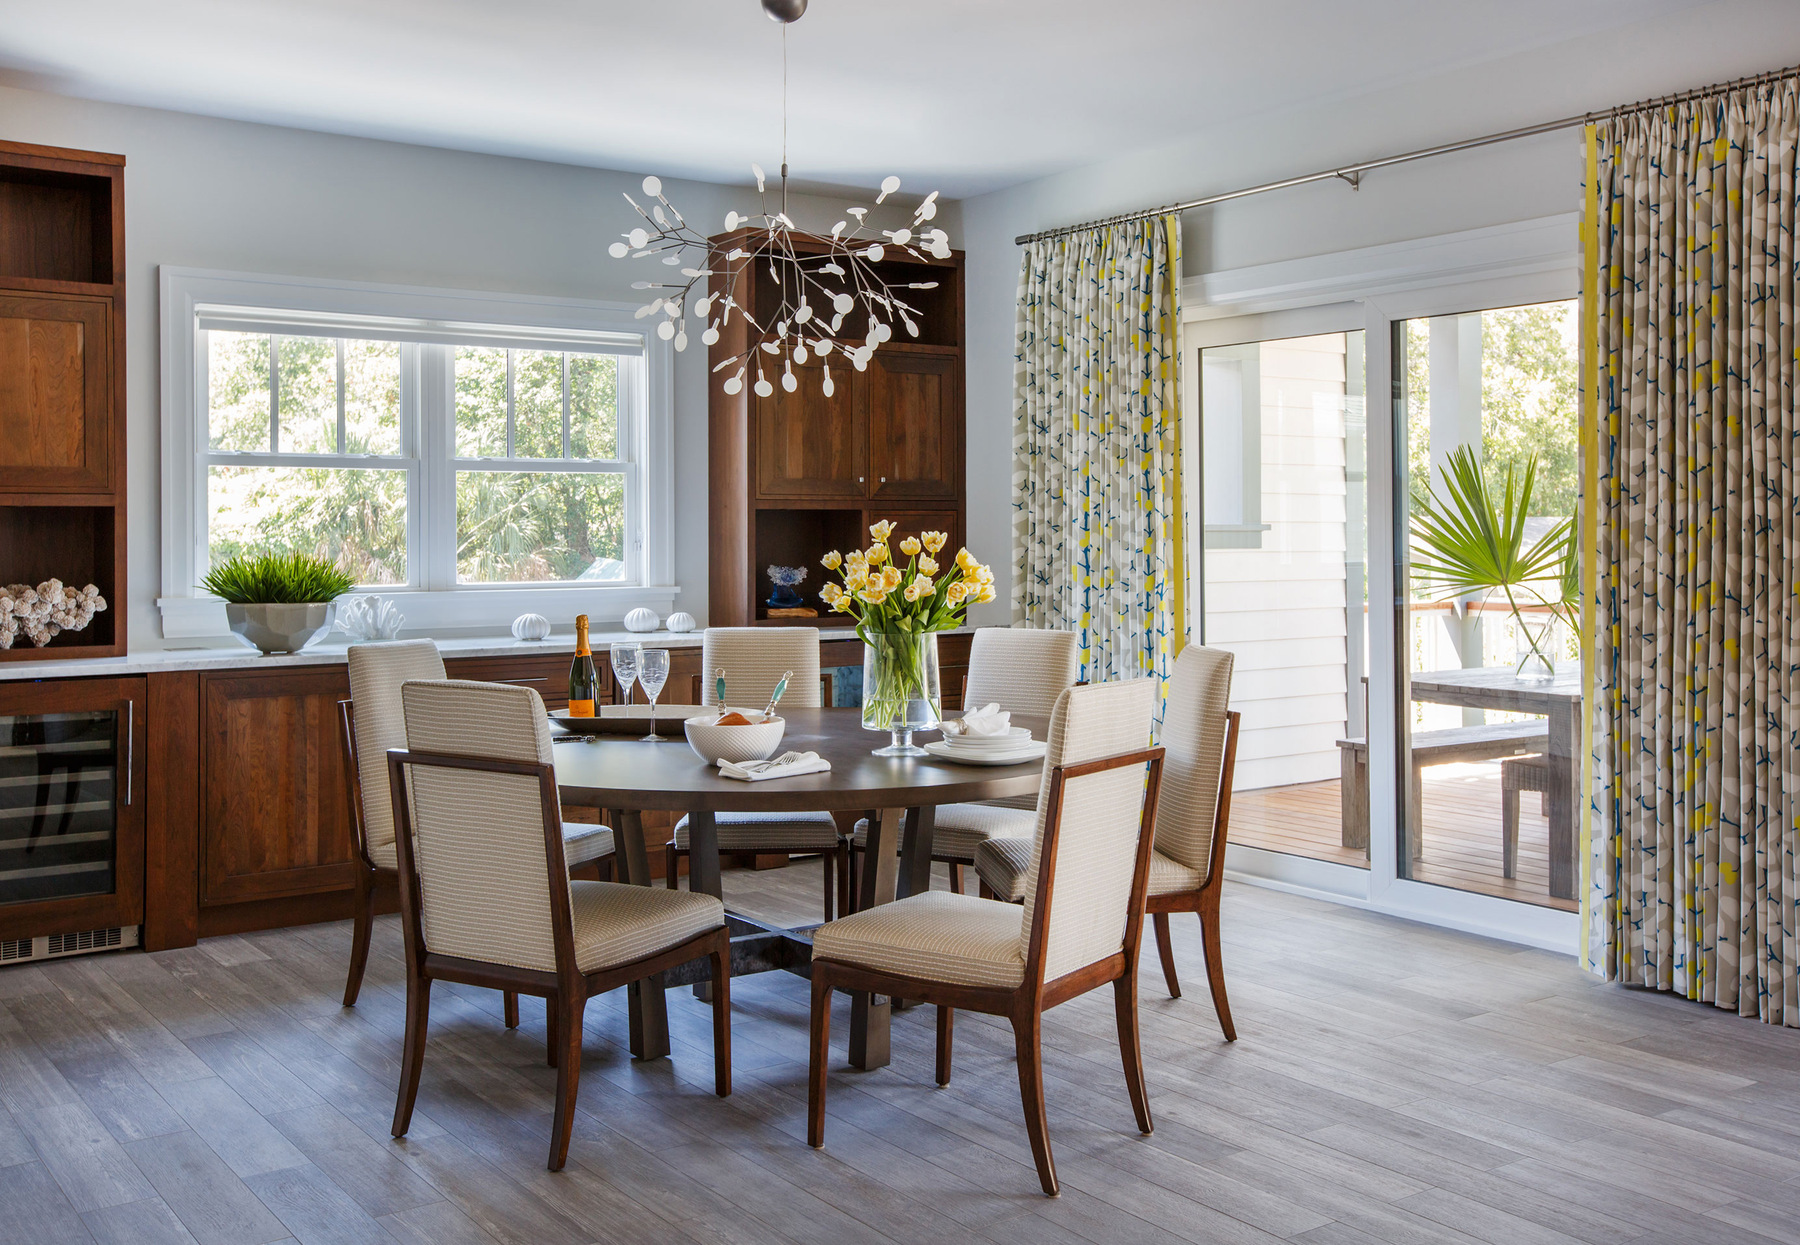 Jessie Preza Commercial Photography - Interiors, Lifestyles and Food ...